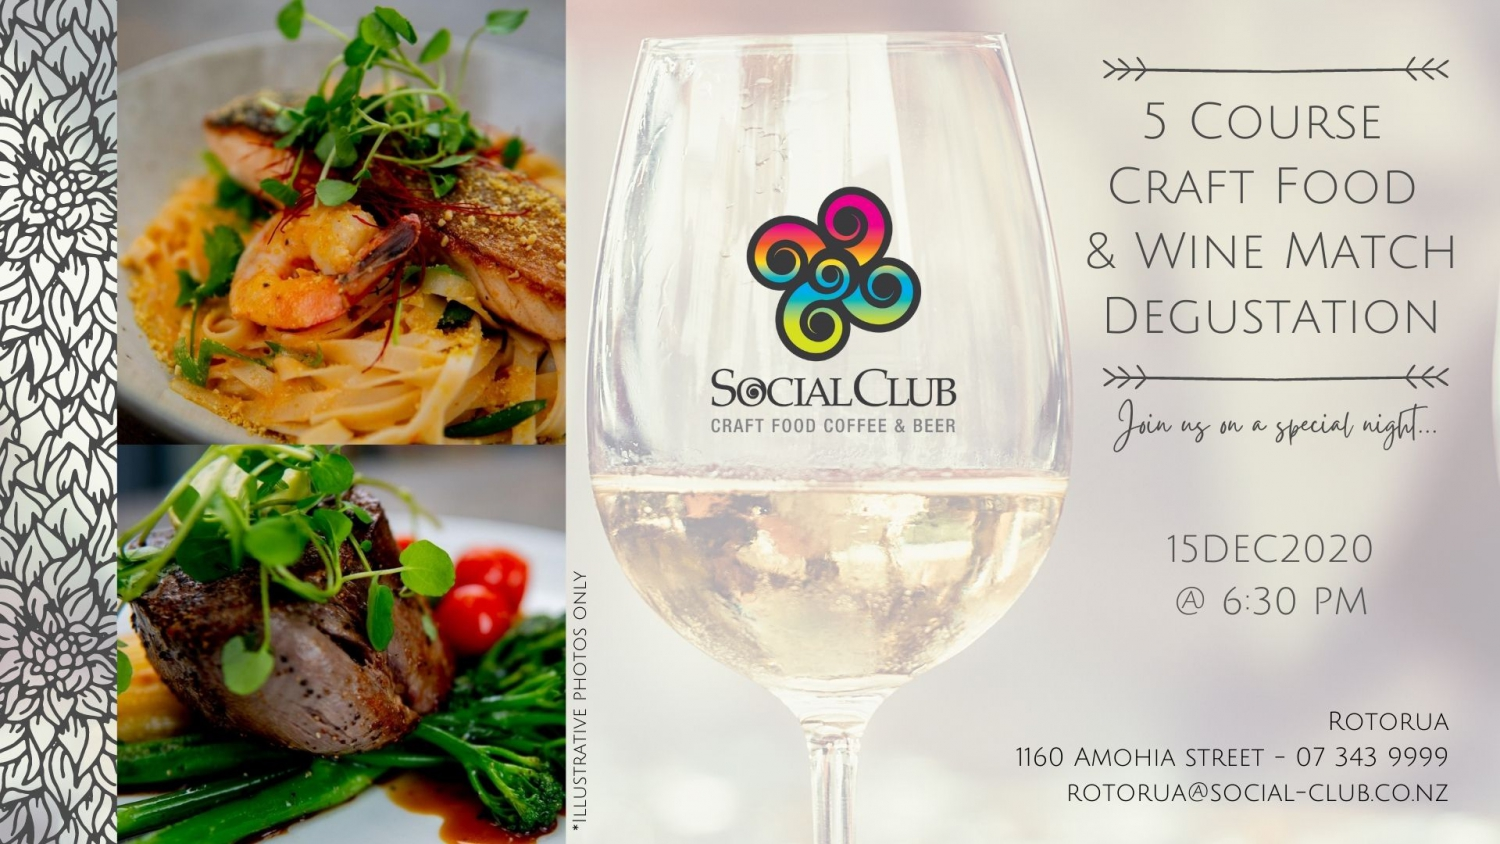 5 courses Creaft Food & Wine Match